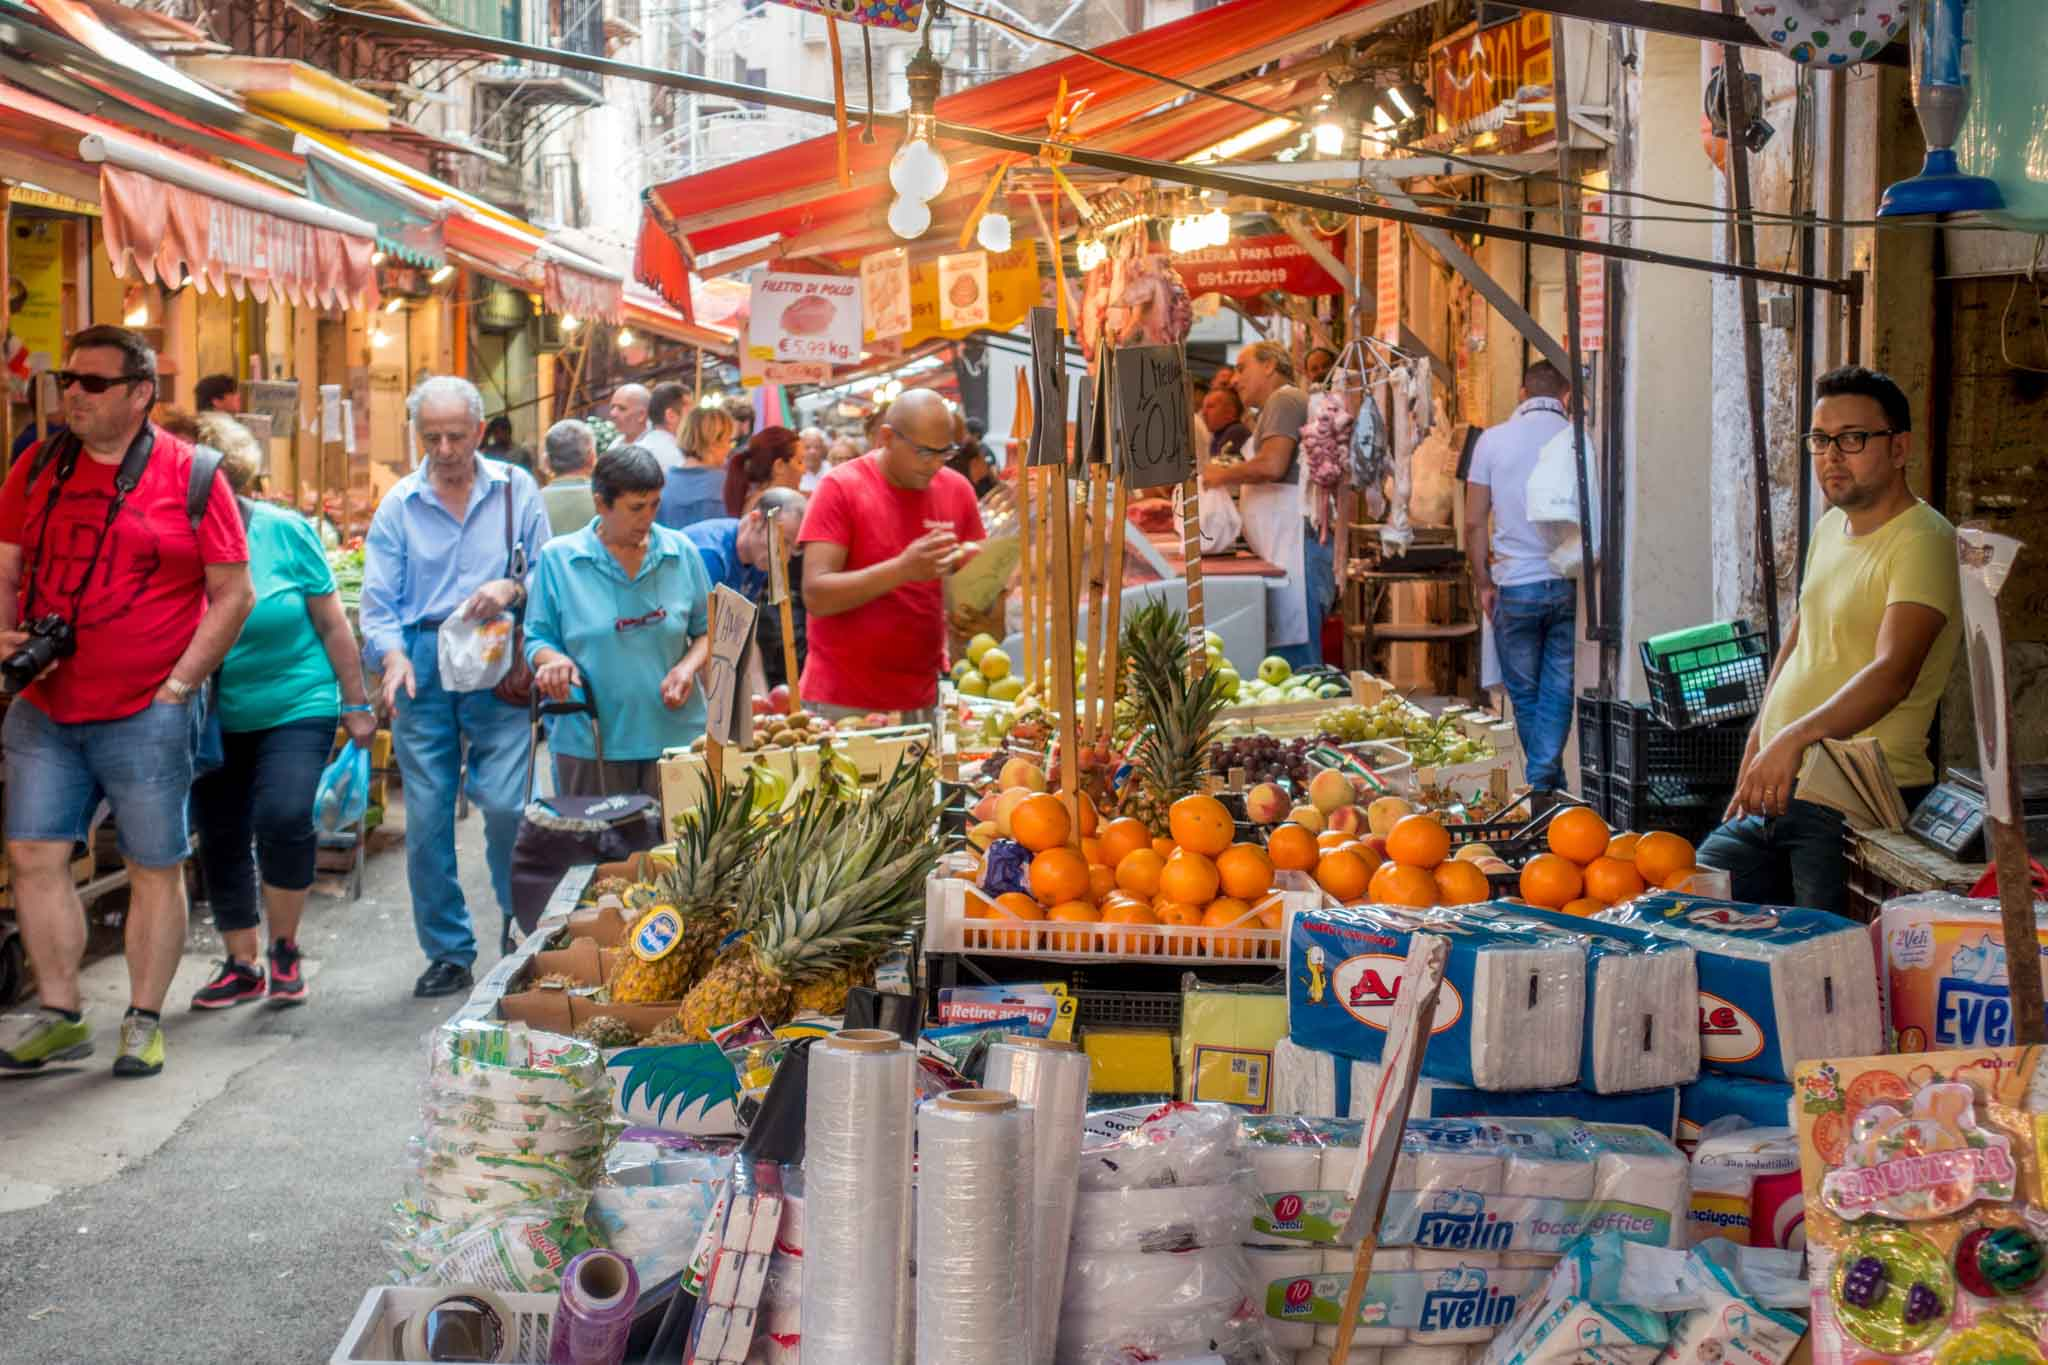 Shoppers and vendors at Ballaro market in Palermo, Sicily